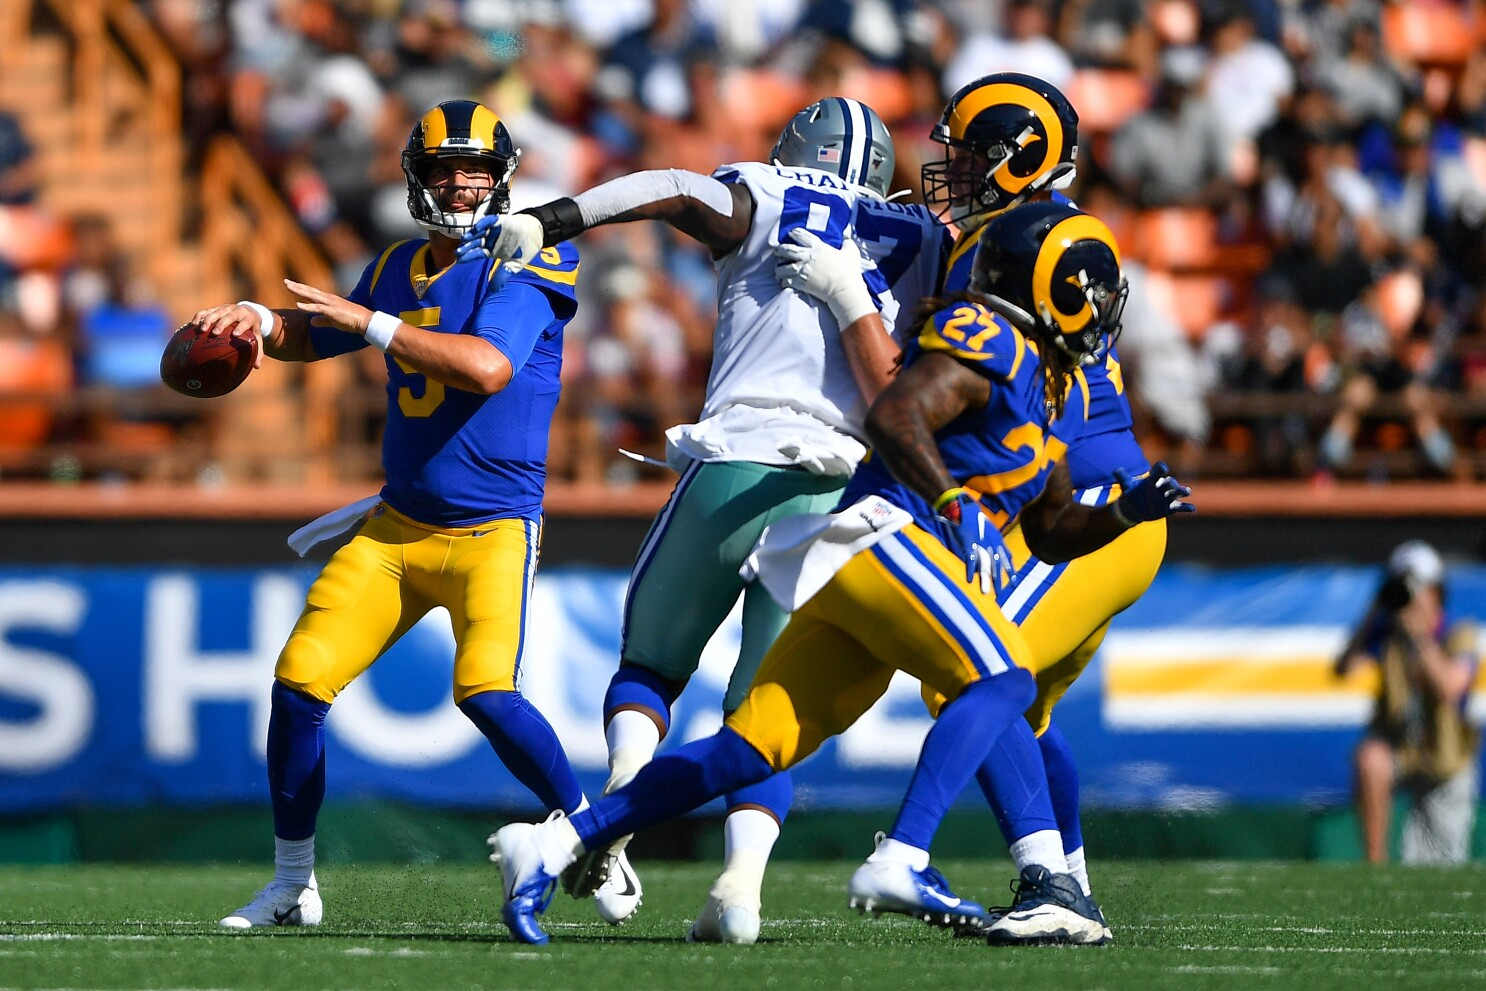 Rams lose to Cowboys in preseason game, but Darrell Henderson shows versatility